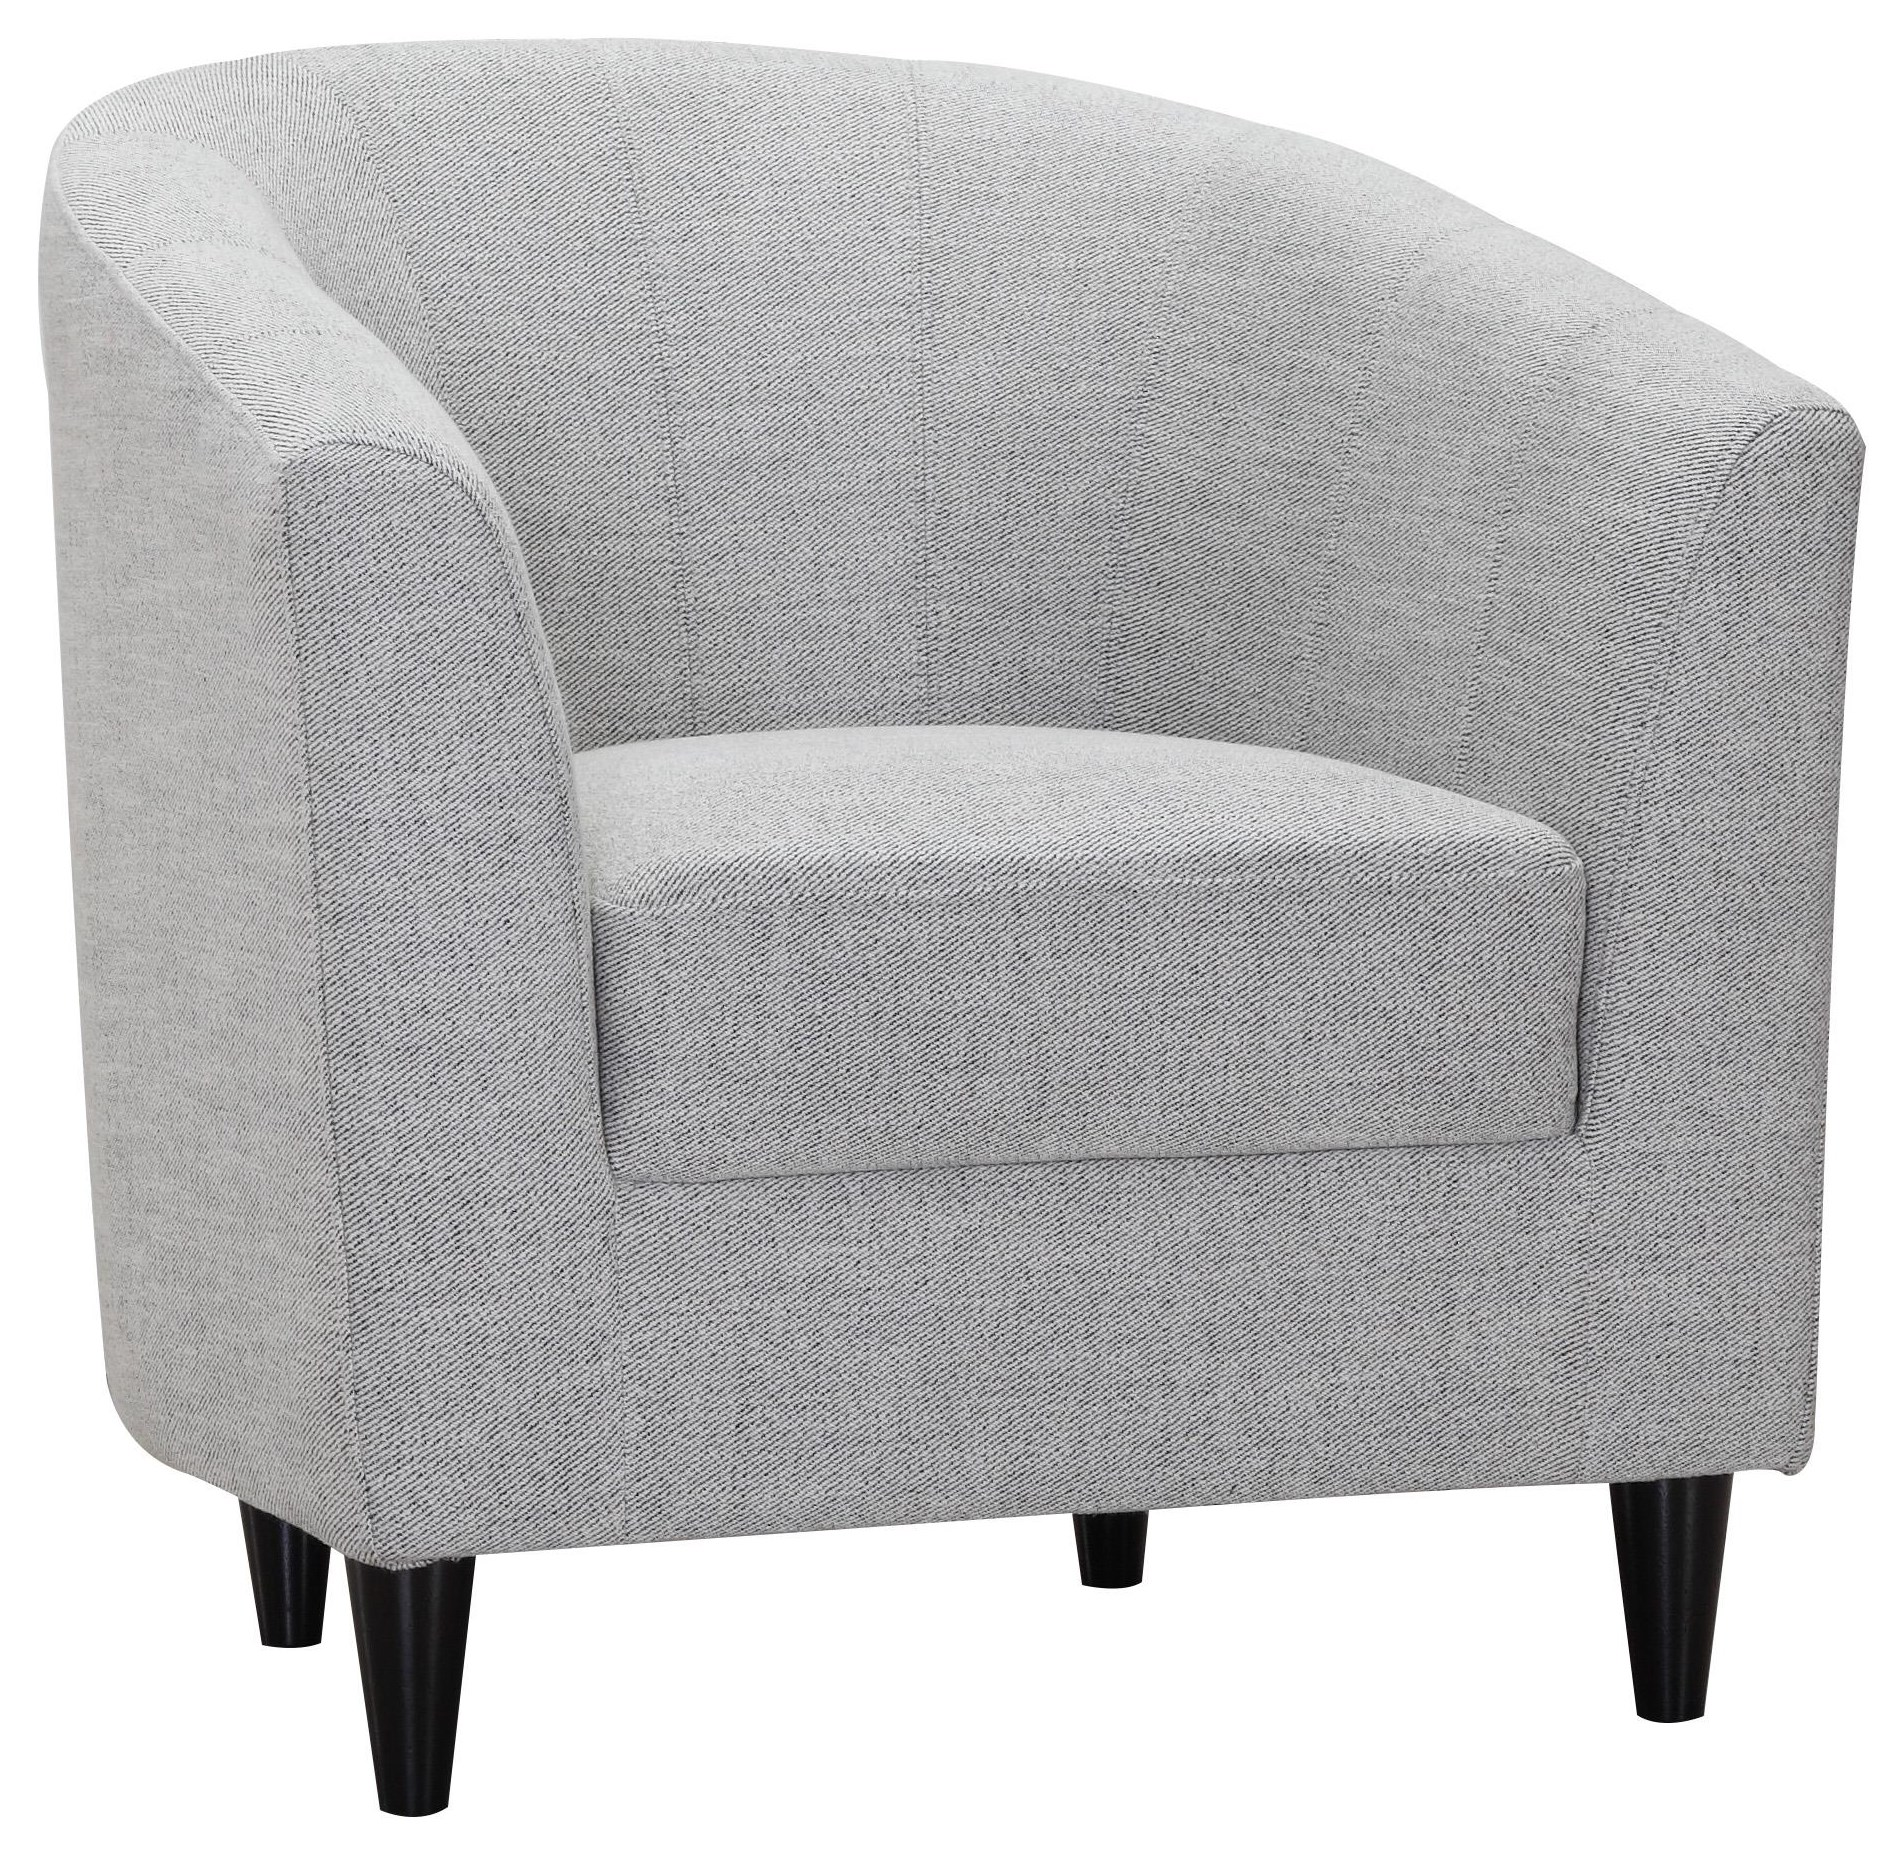 3935 Marcus Chair/julie 05-coal by Urban Chic at Stoney Creek Furniture